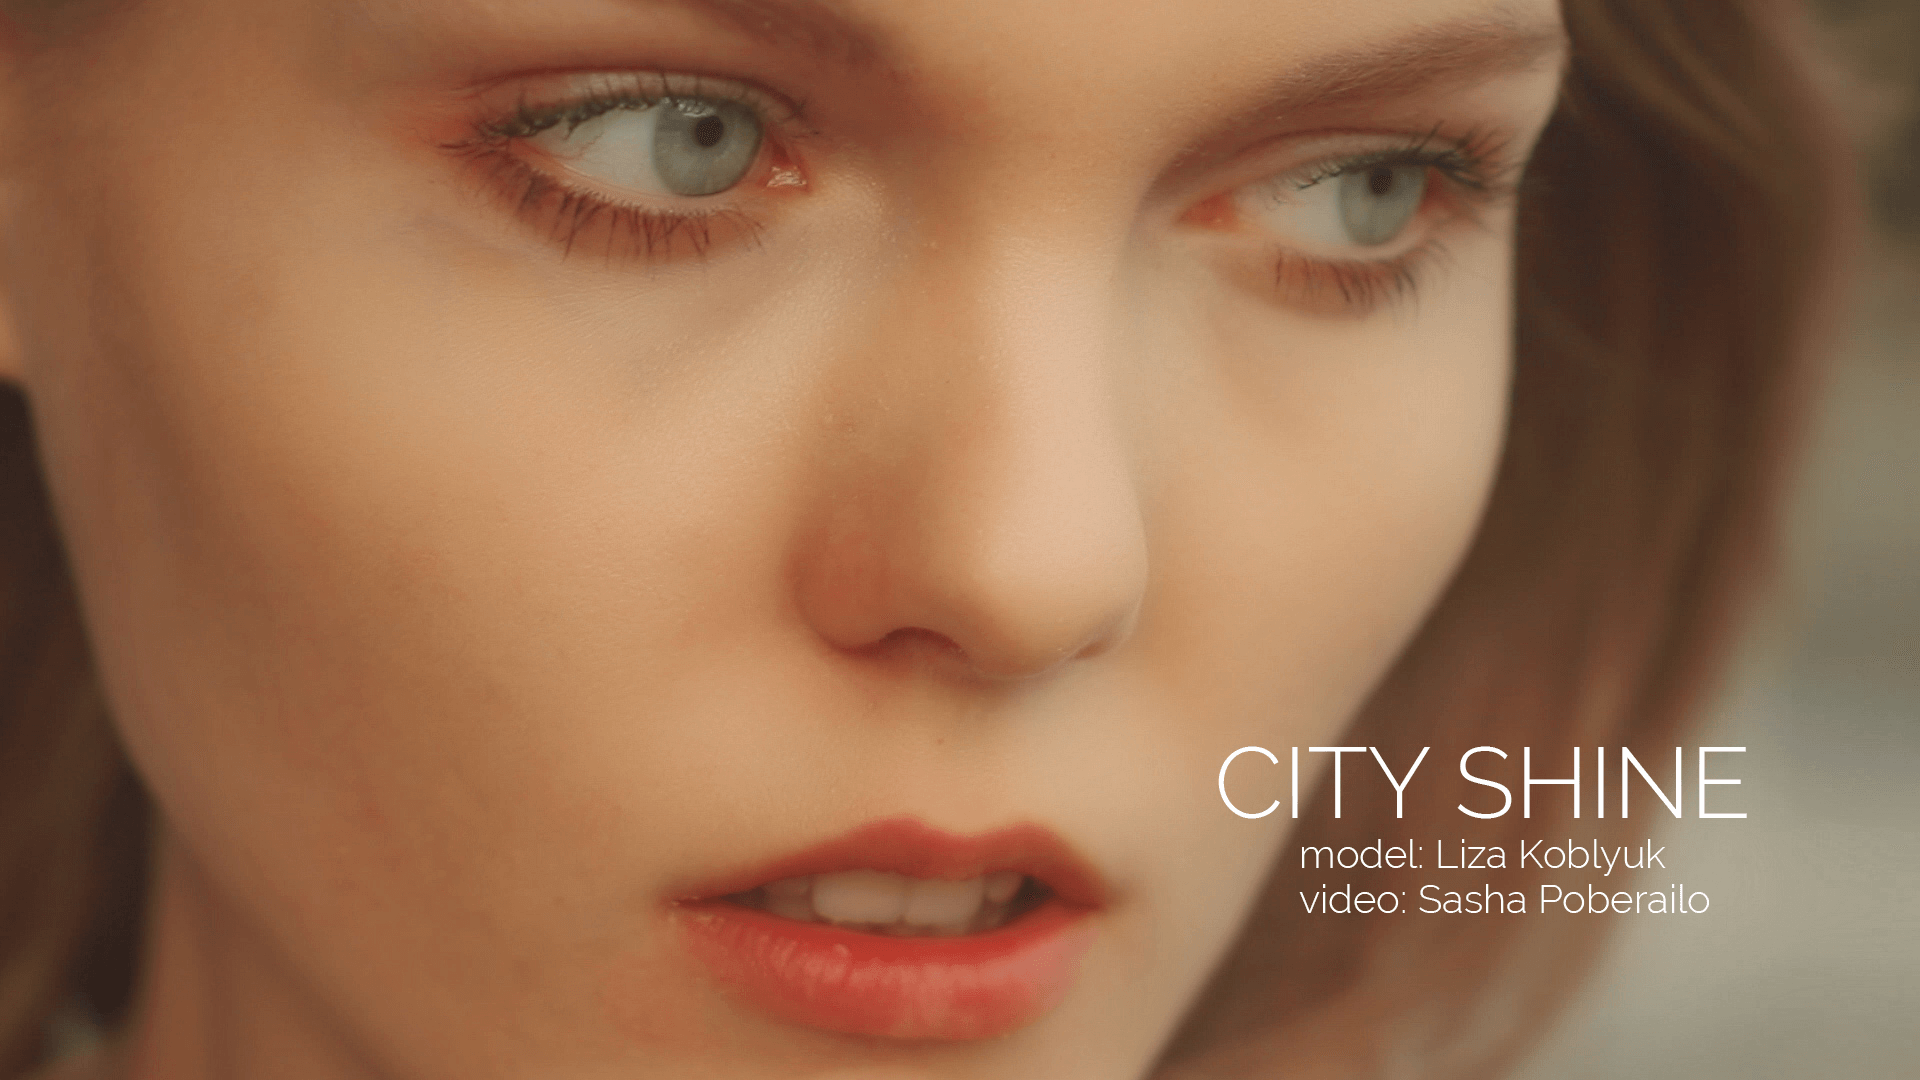 city shine fashion short film - actress